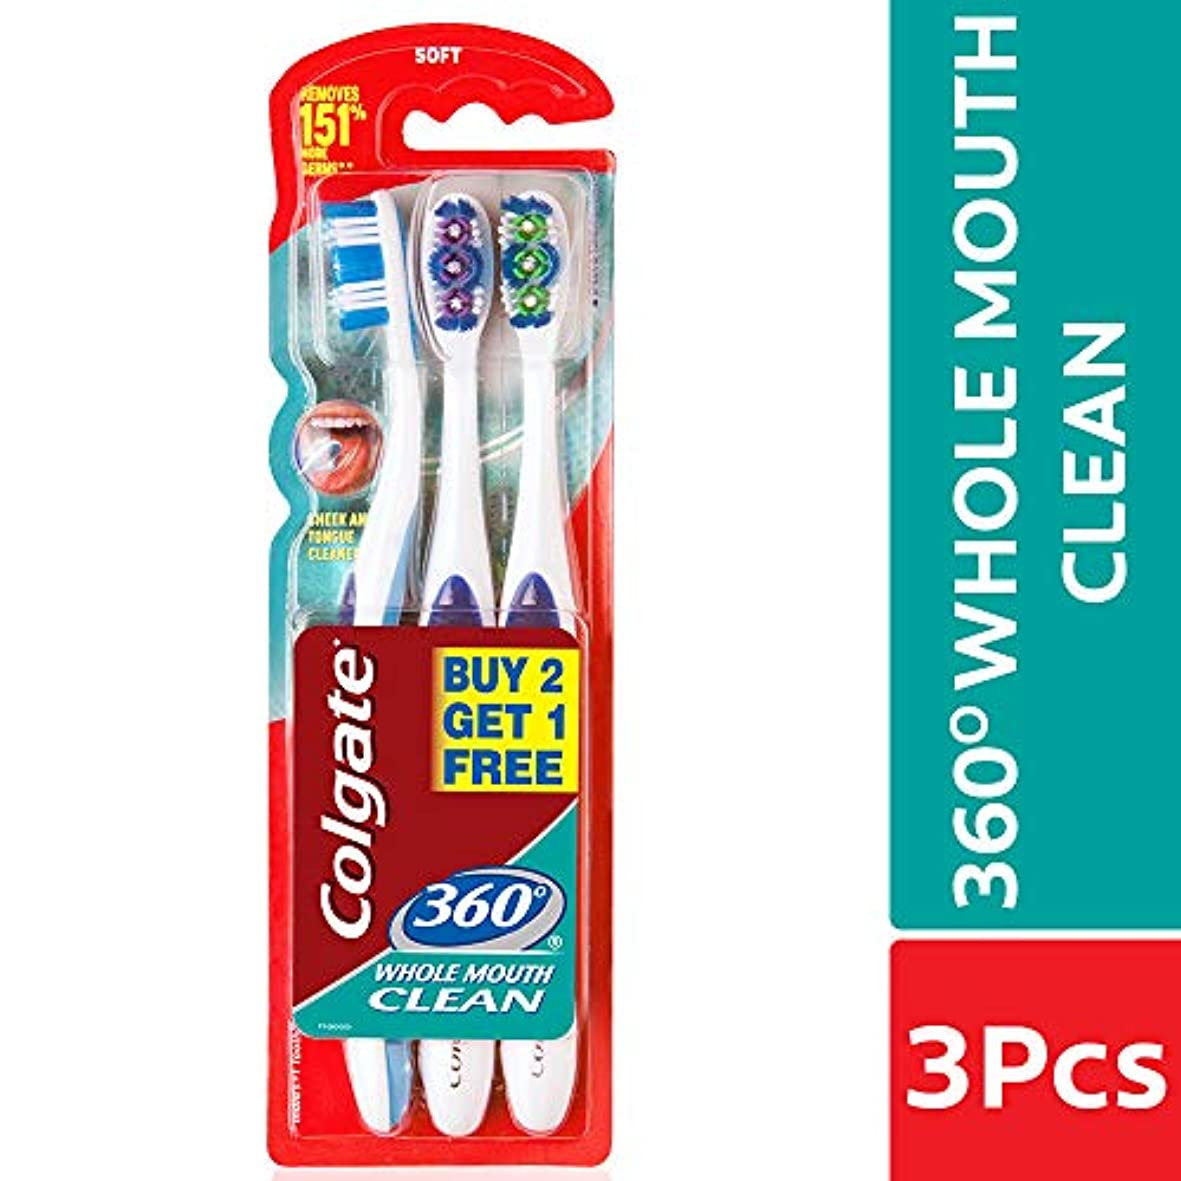 シダ弾丸ポーズColgate 360 whole mouth clean (MEDIUM) toothbrush (3pc pack)